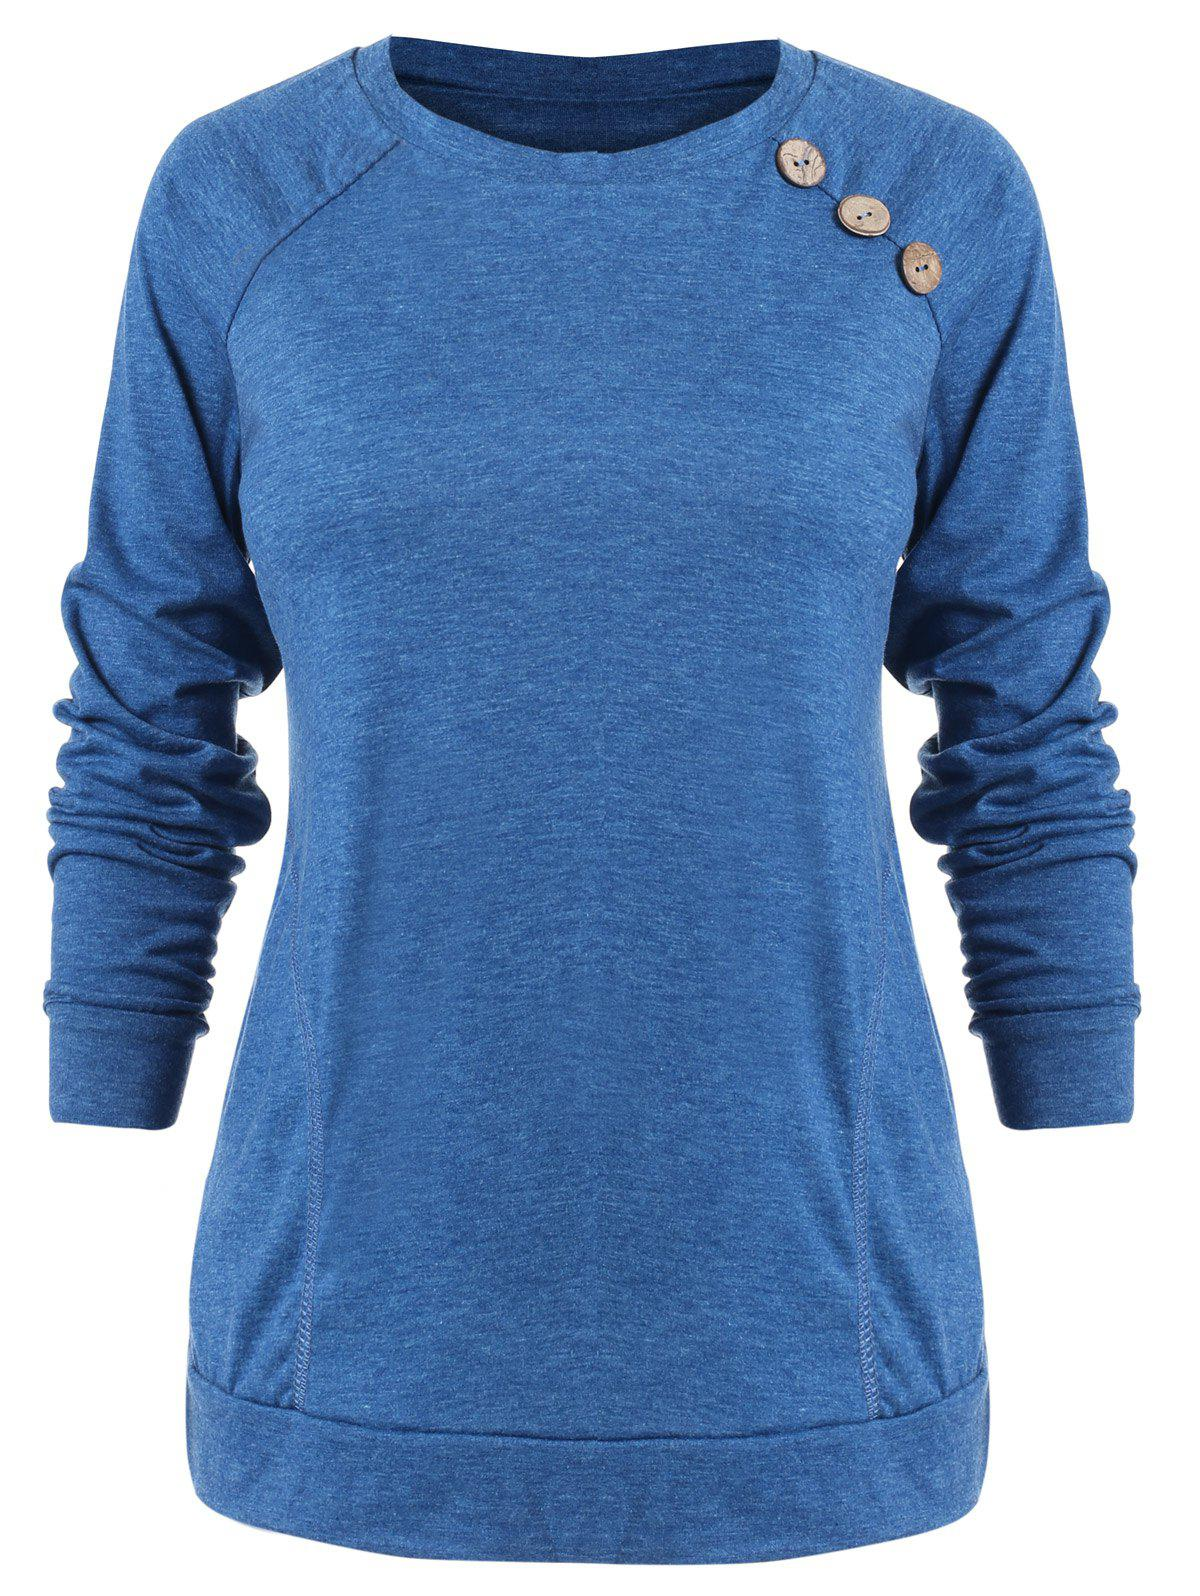 Discount Buttons Embellished Long Sleeve T-shirt